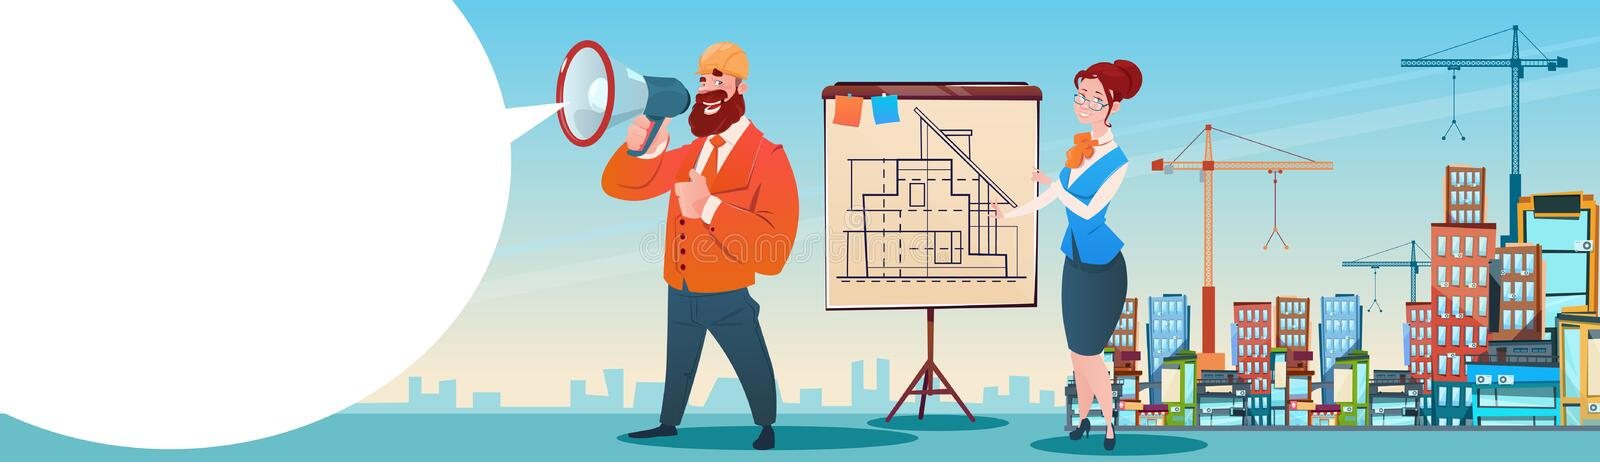 Builder Architect Workers Boss Hold Megaphone Present Architecture Drafting City Building Background royalty free illustration